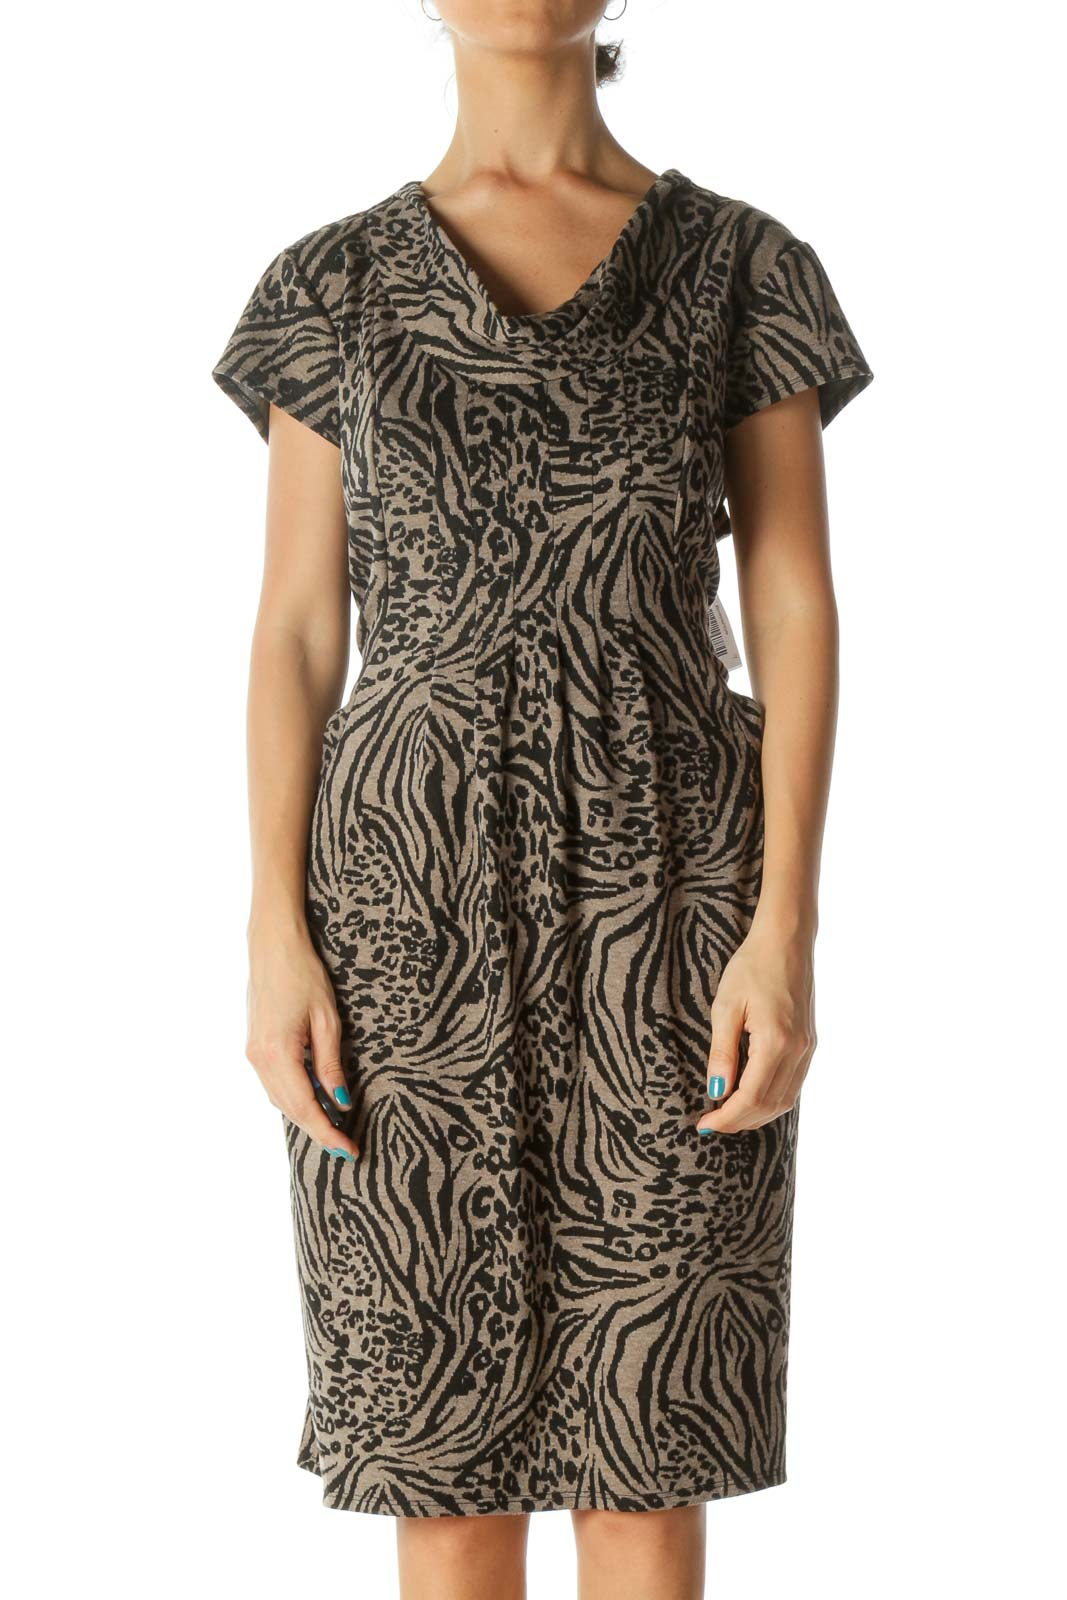 Brown and Black Animal Print Cowl Neck Cap Sleeve Knit Dress